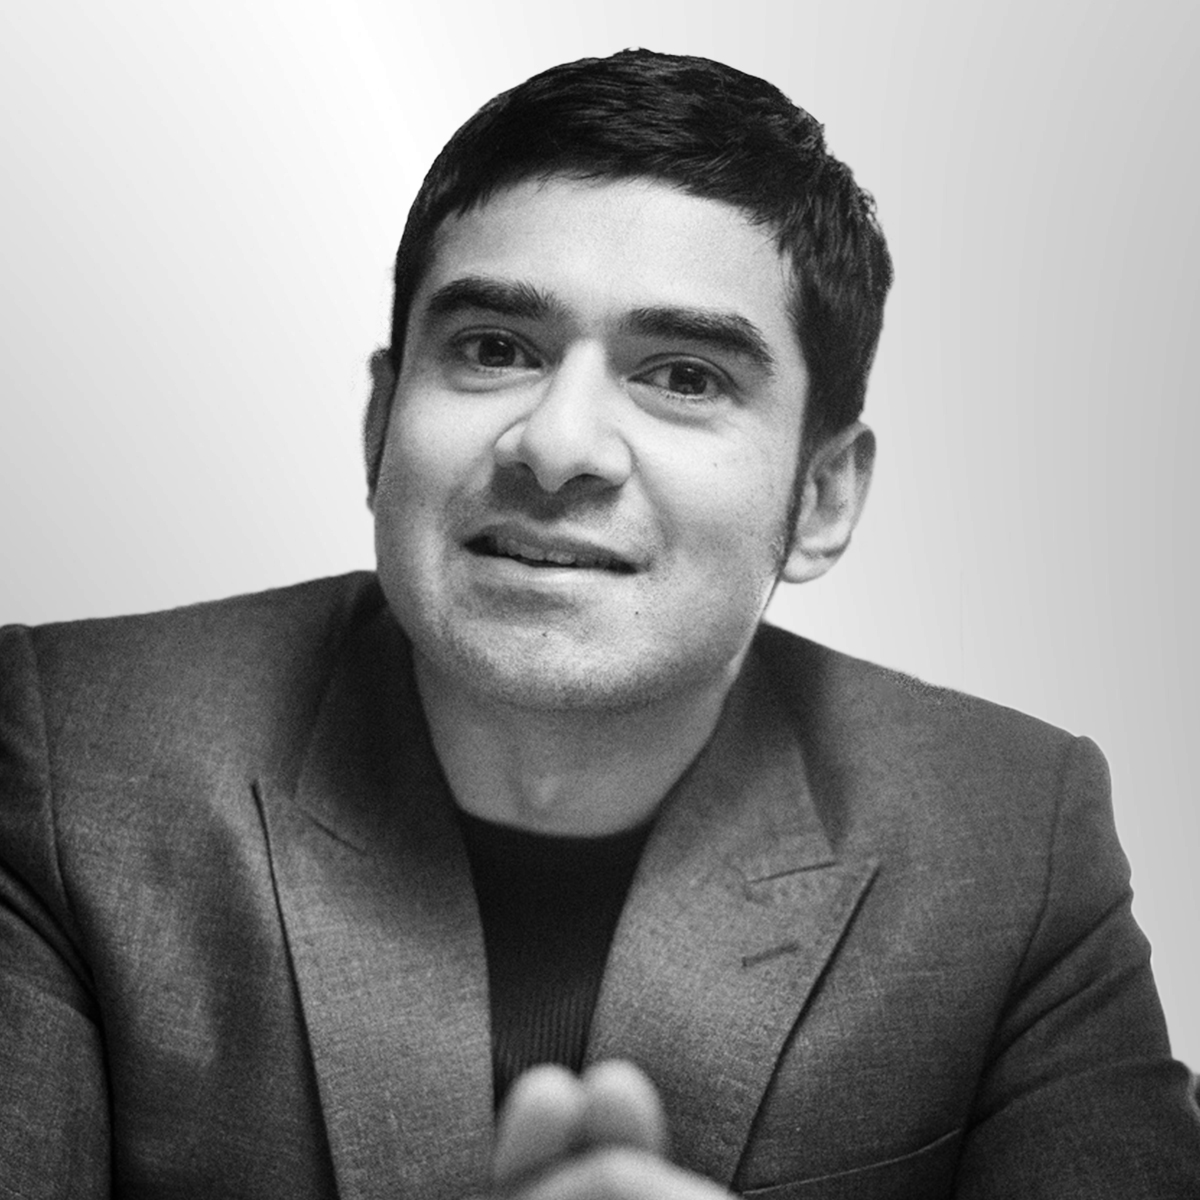 A picture of Sharad Paul